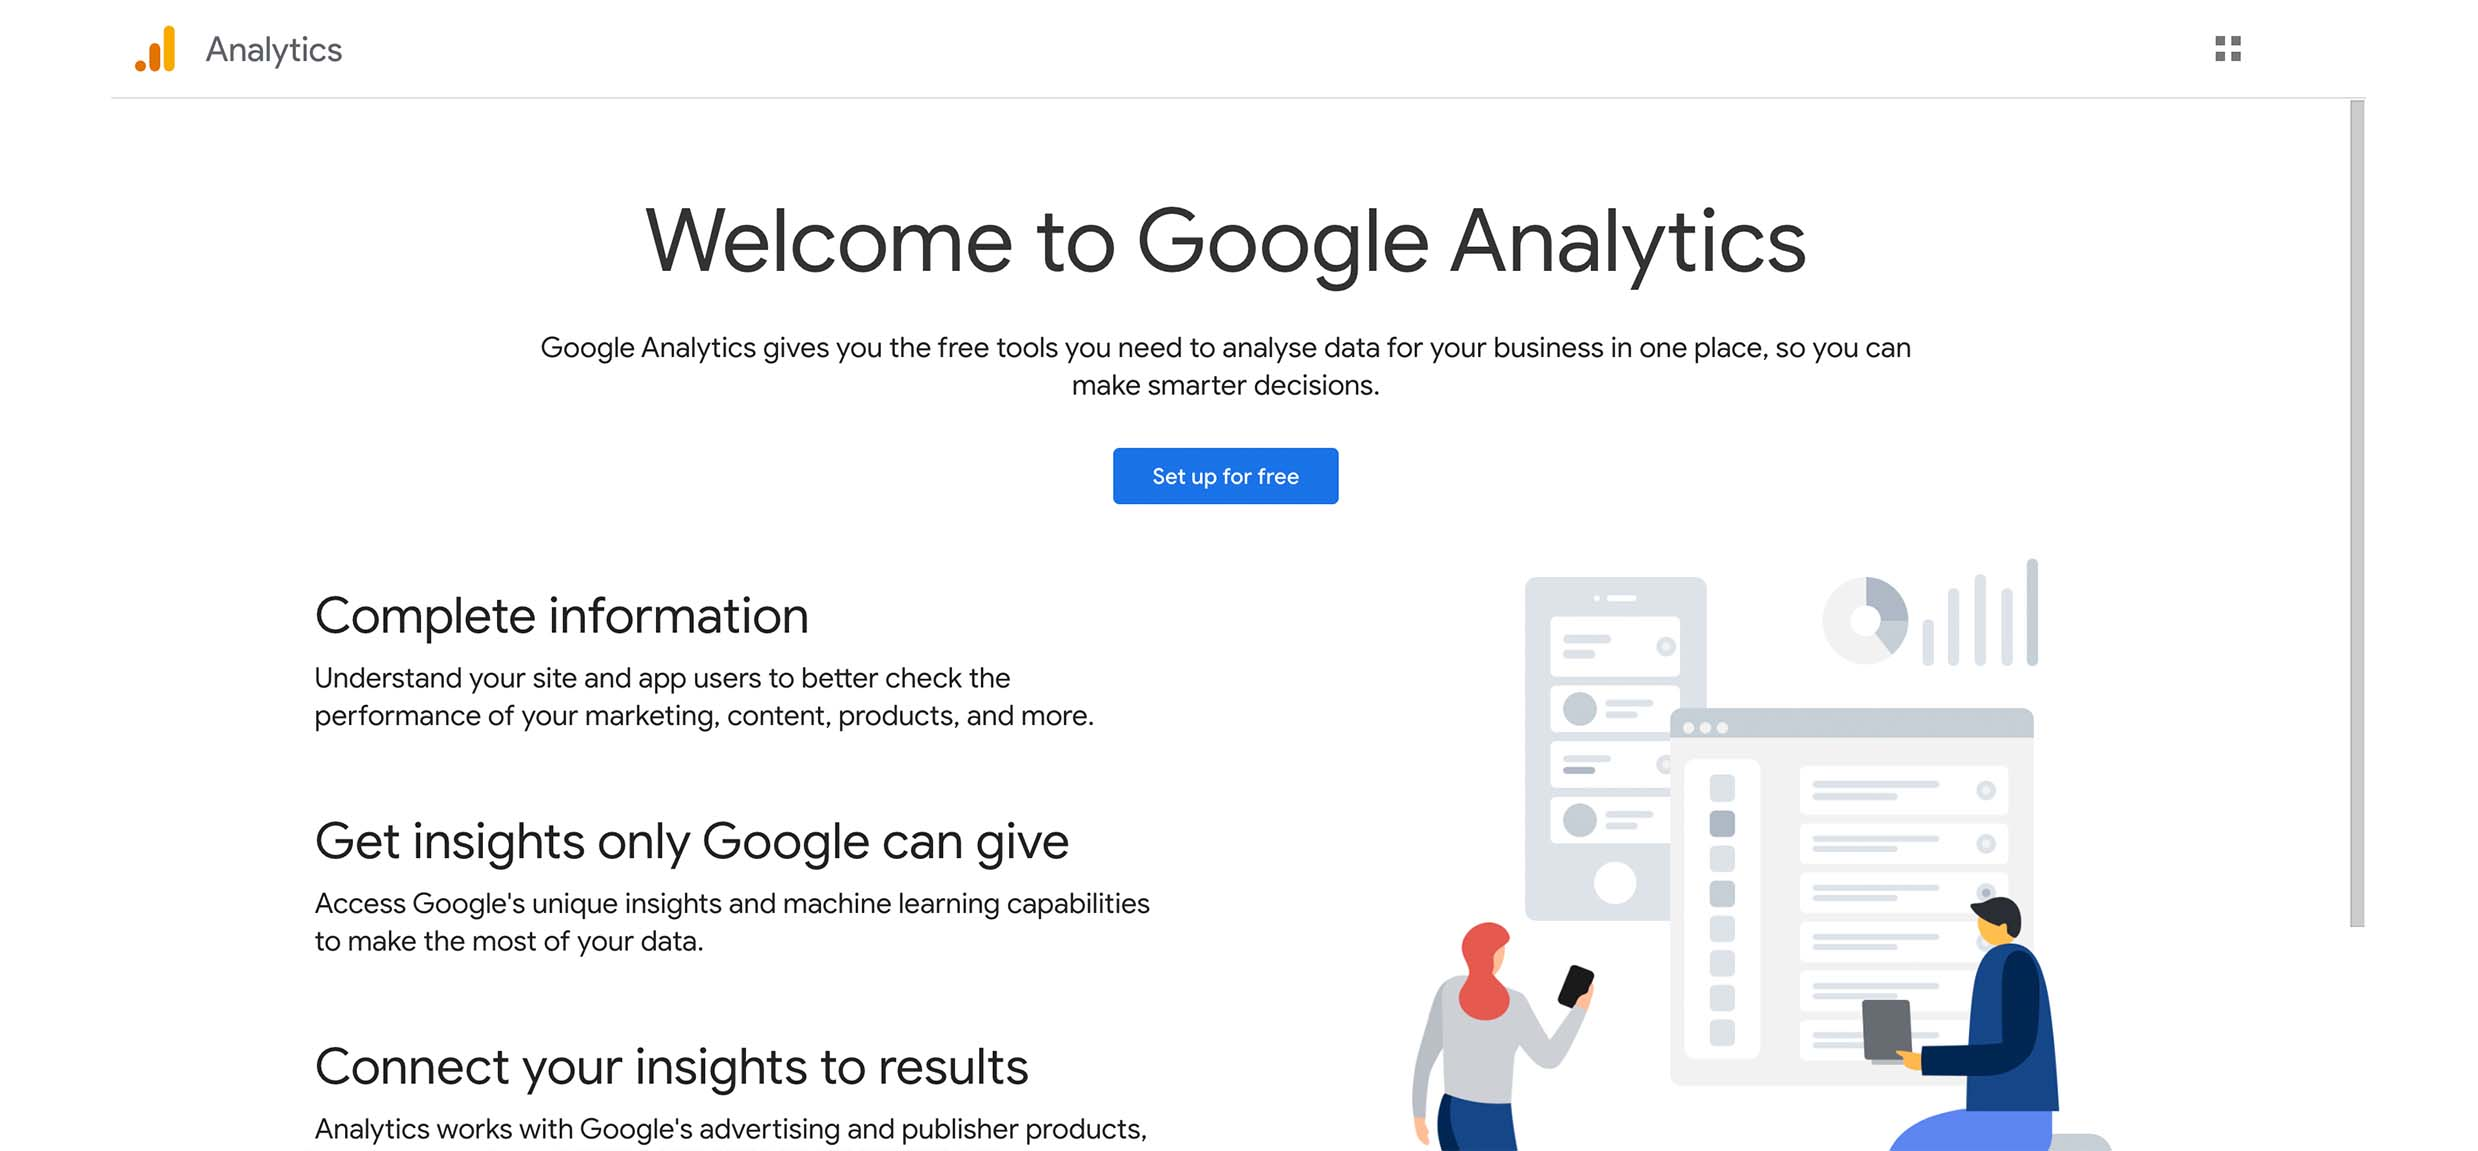 How to Set up Google Analytics: The Complete Guide (with pictures)